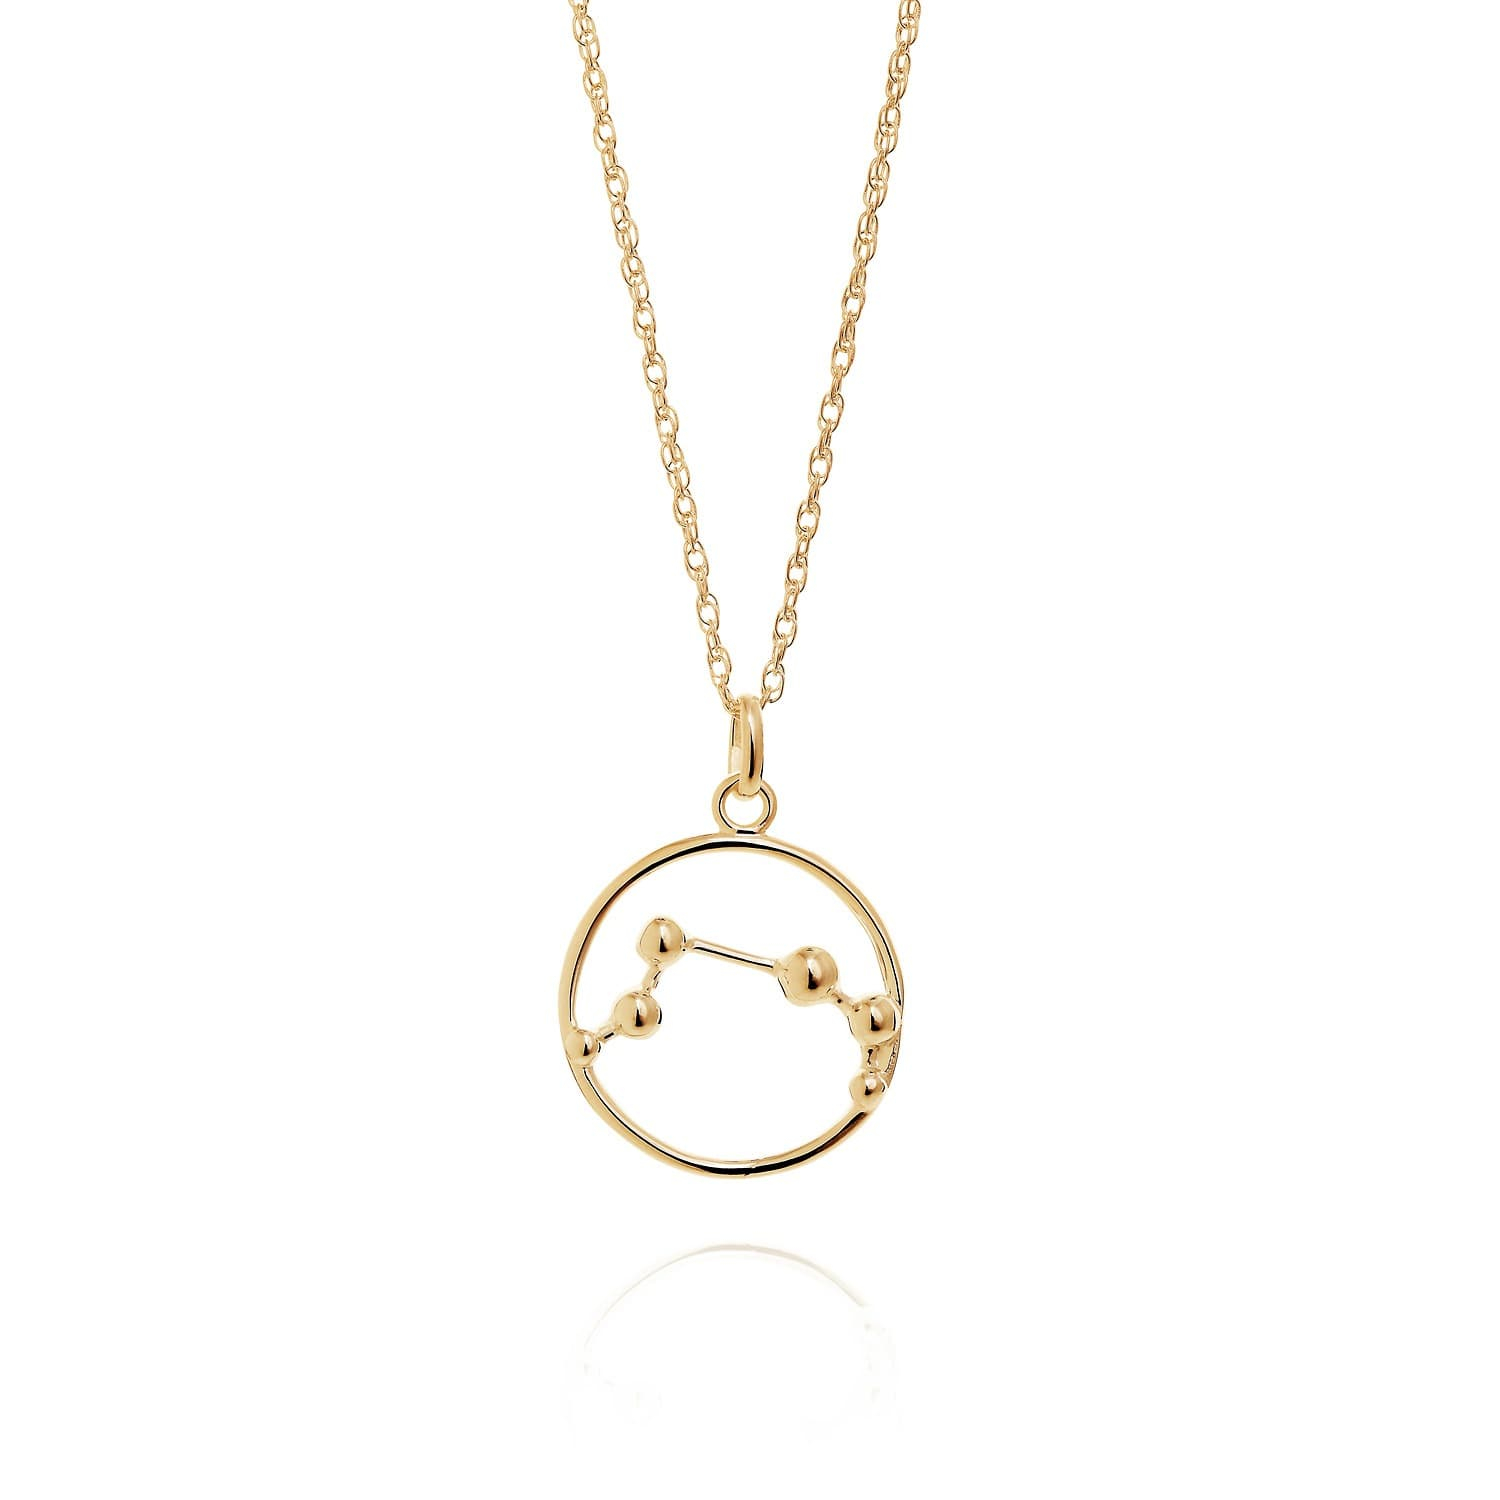 Aries Astrology Necklace In 9ct Gold Yasmin Everley Jewellery